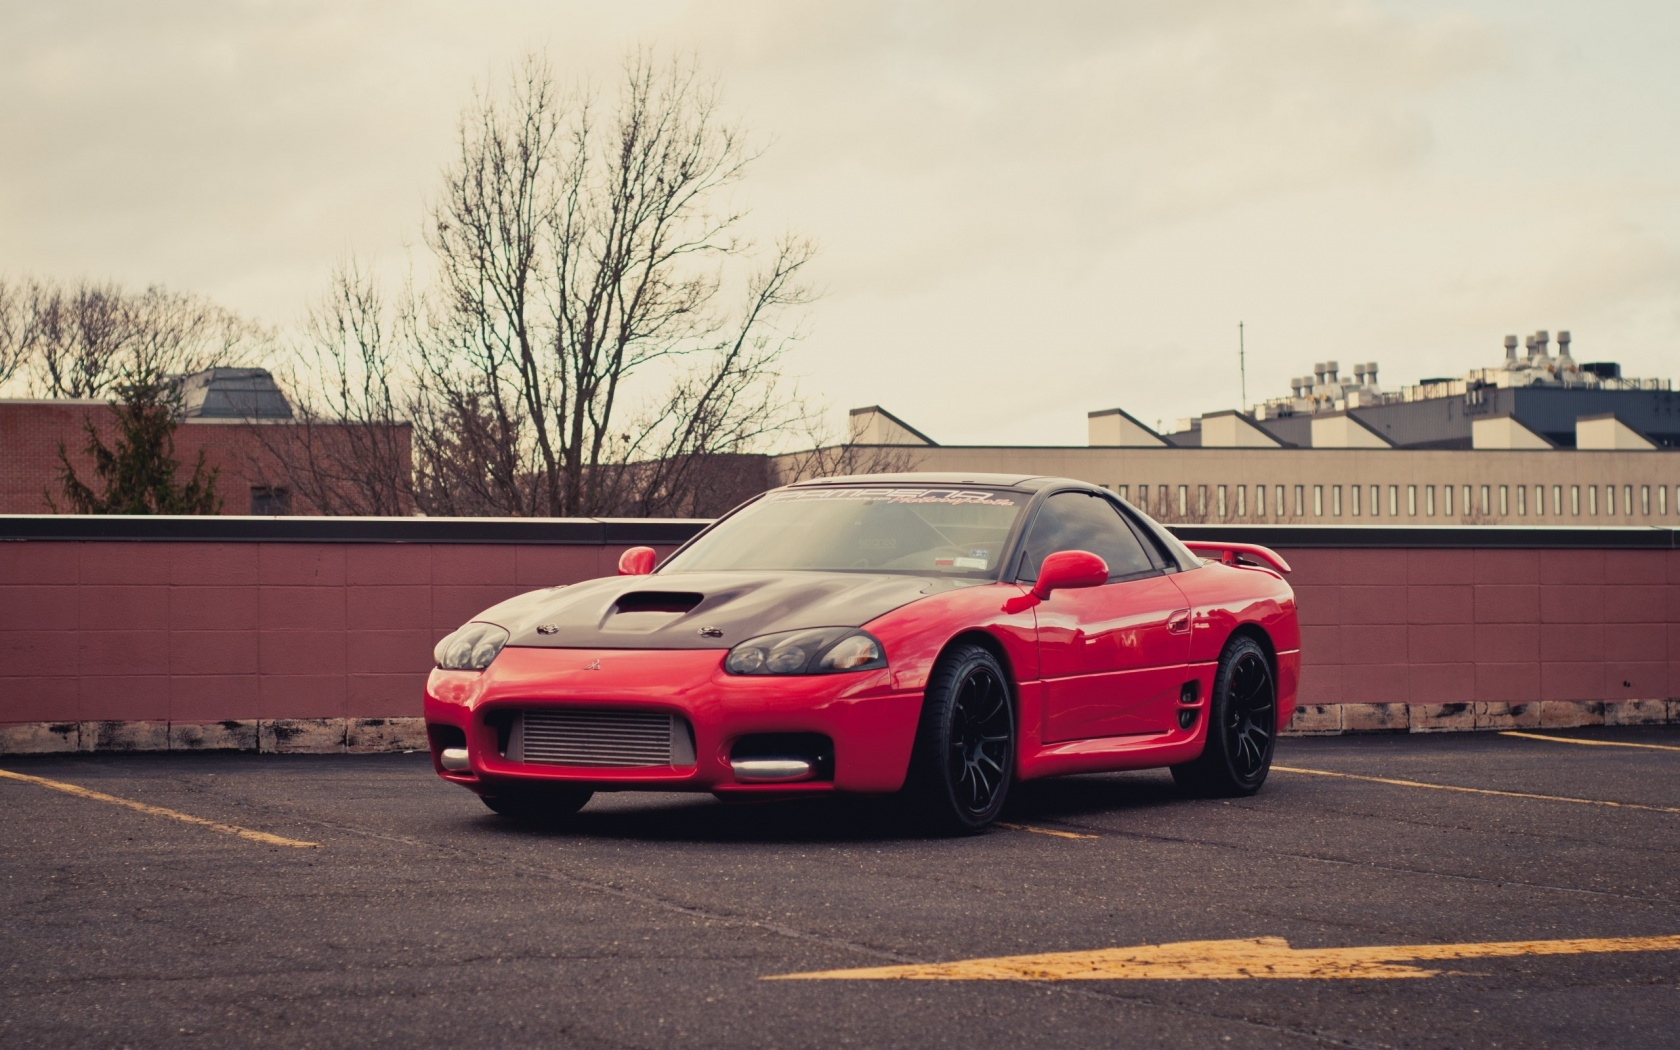 Red Car Wallpaper Download Mitsubishi 3000gt Red Car Wallpapers 1680x1050 514693